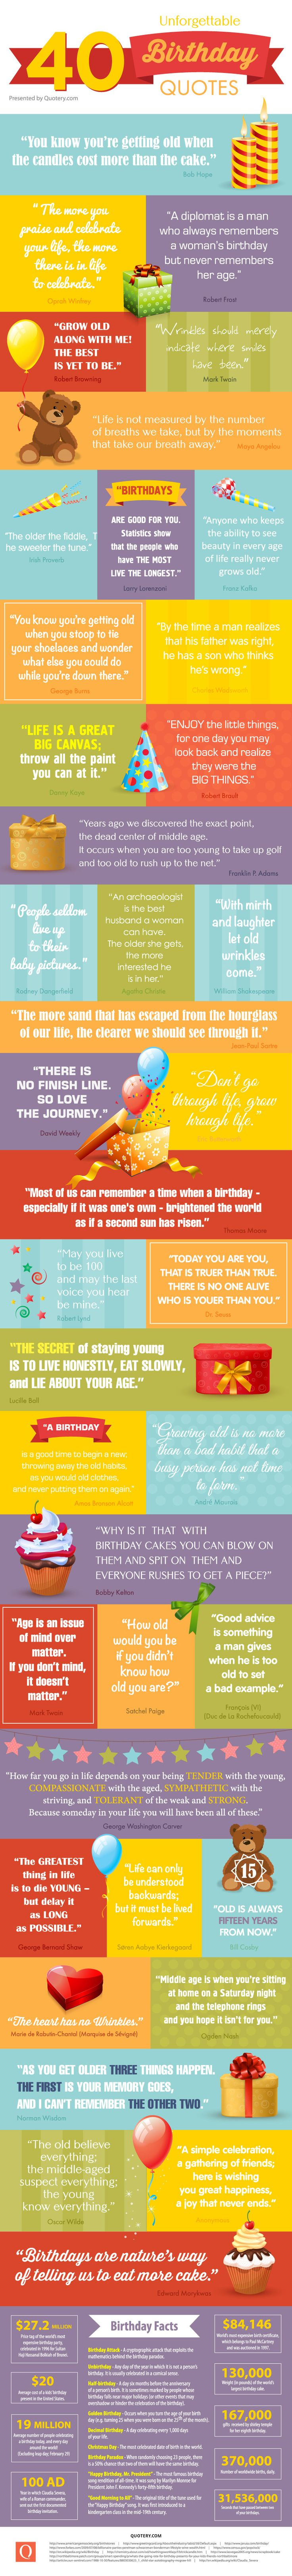 40 Unforgettable #Birthday #Quotes #infographic